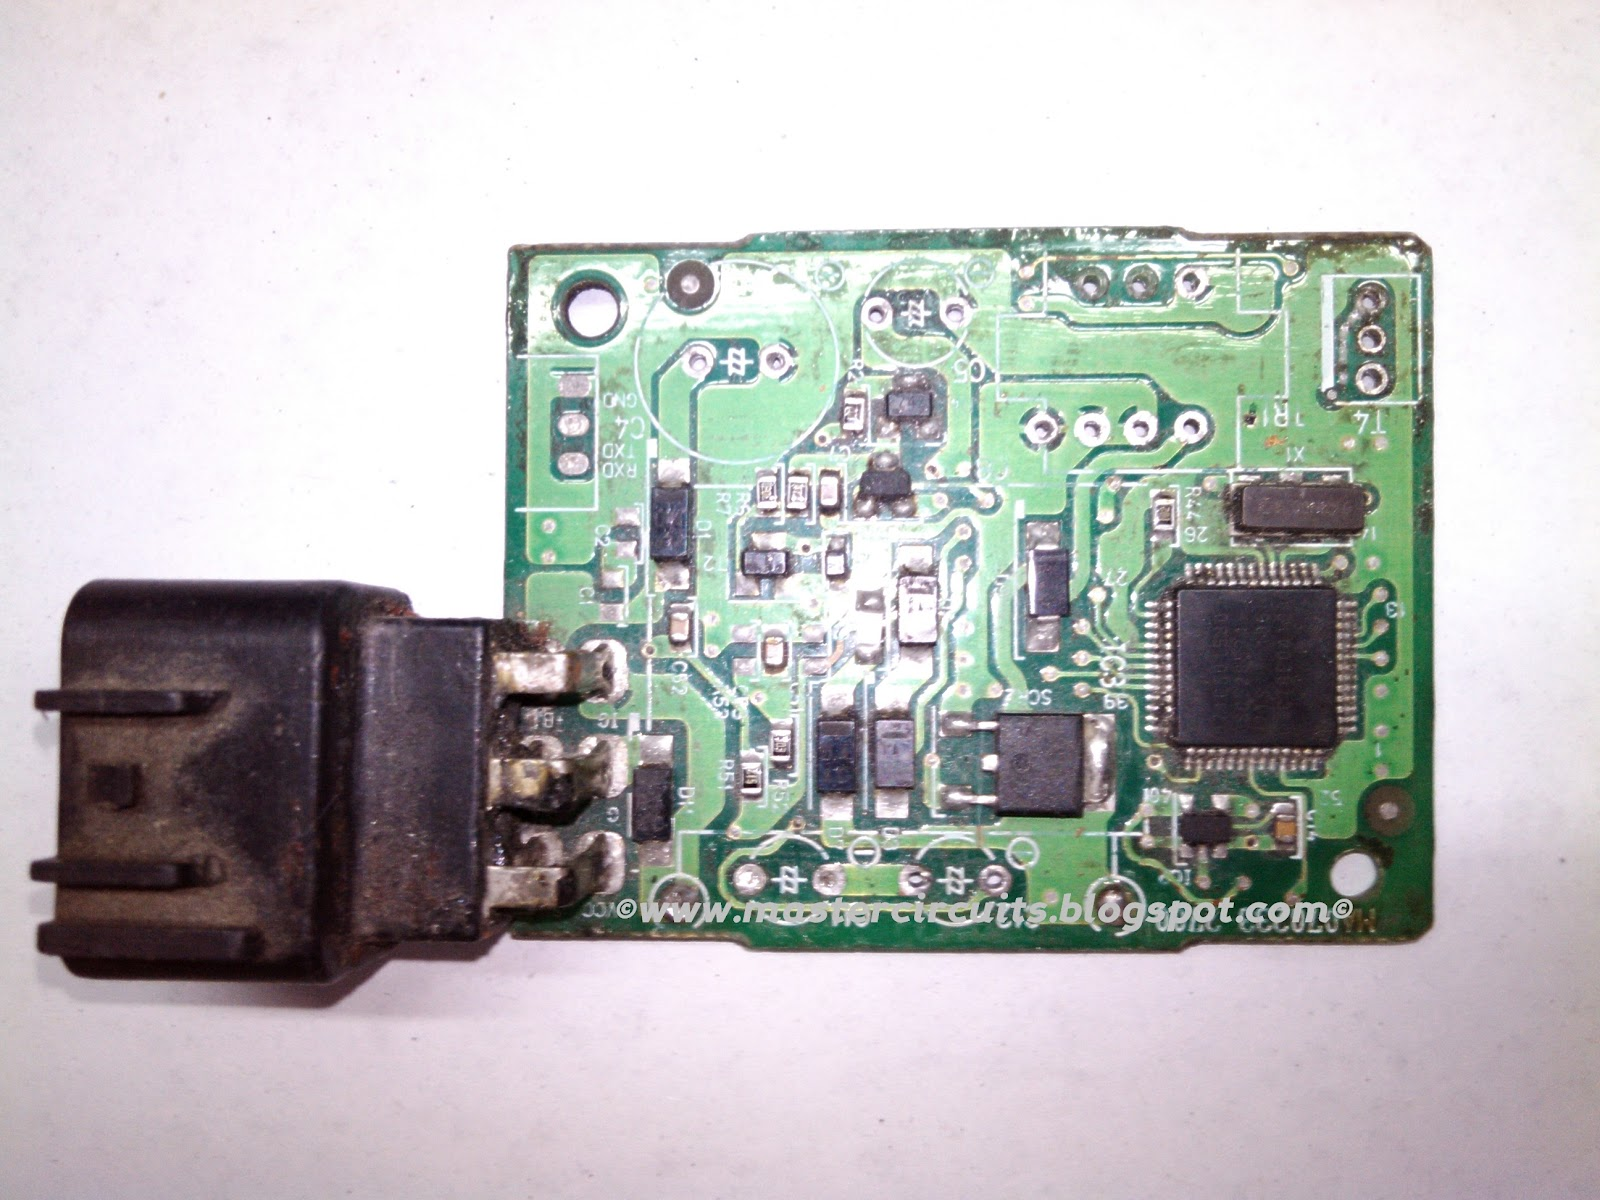 medium resolution of the picture shows an oem dc cdi of a suzuki shogun 125cc that prior on my recent posting about kawasaki oem dc cdi they are almost identical